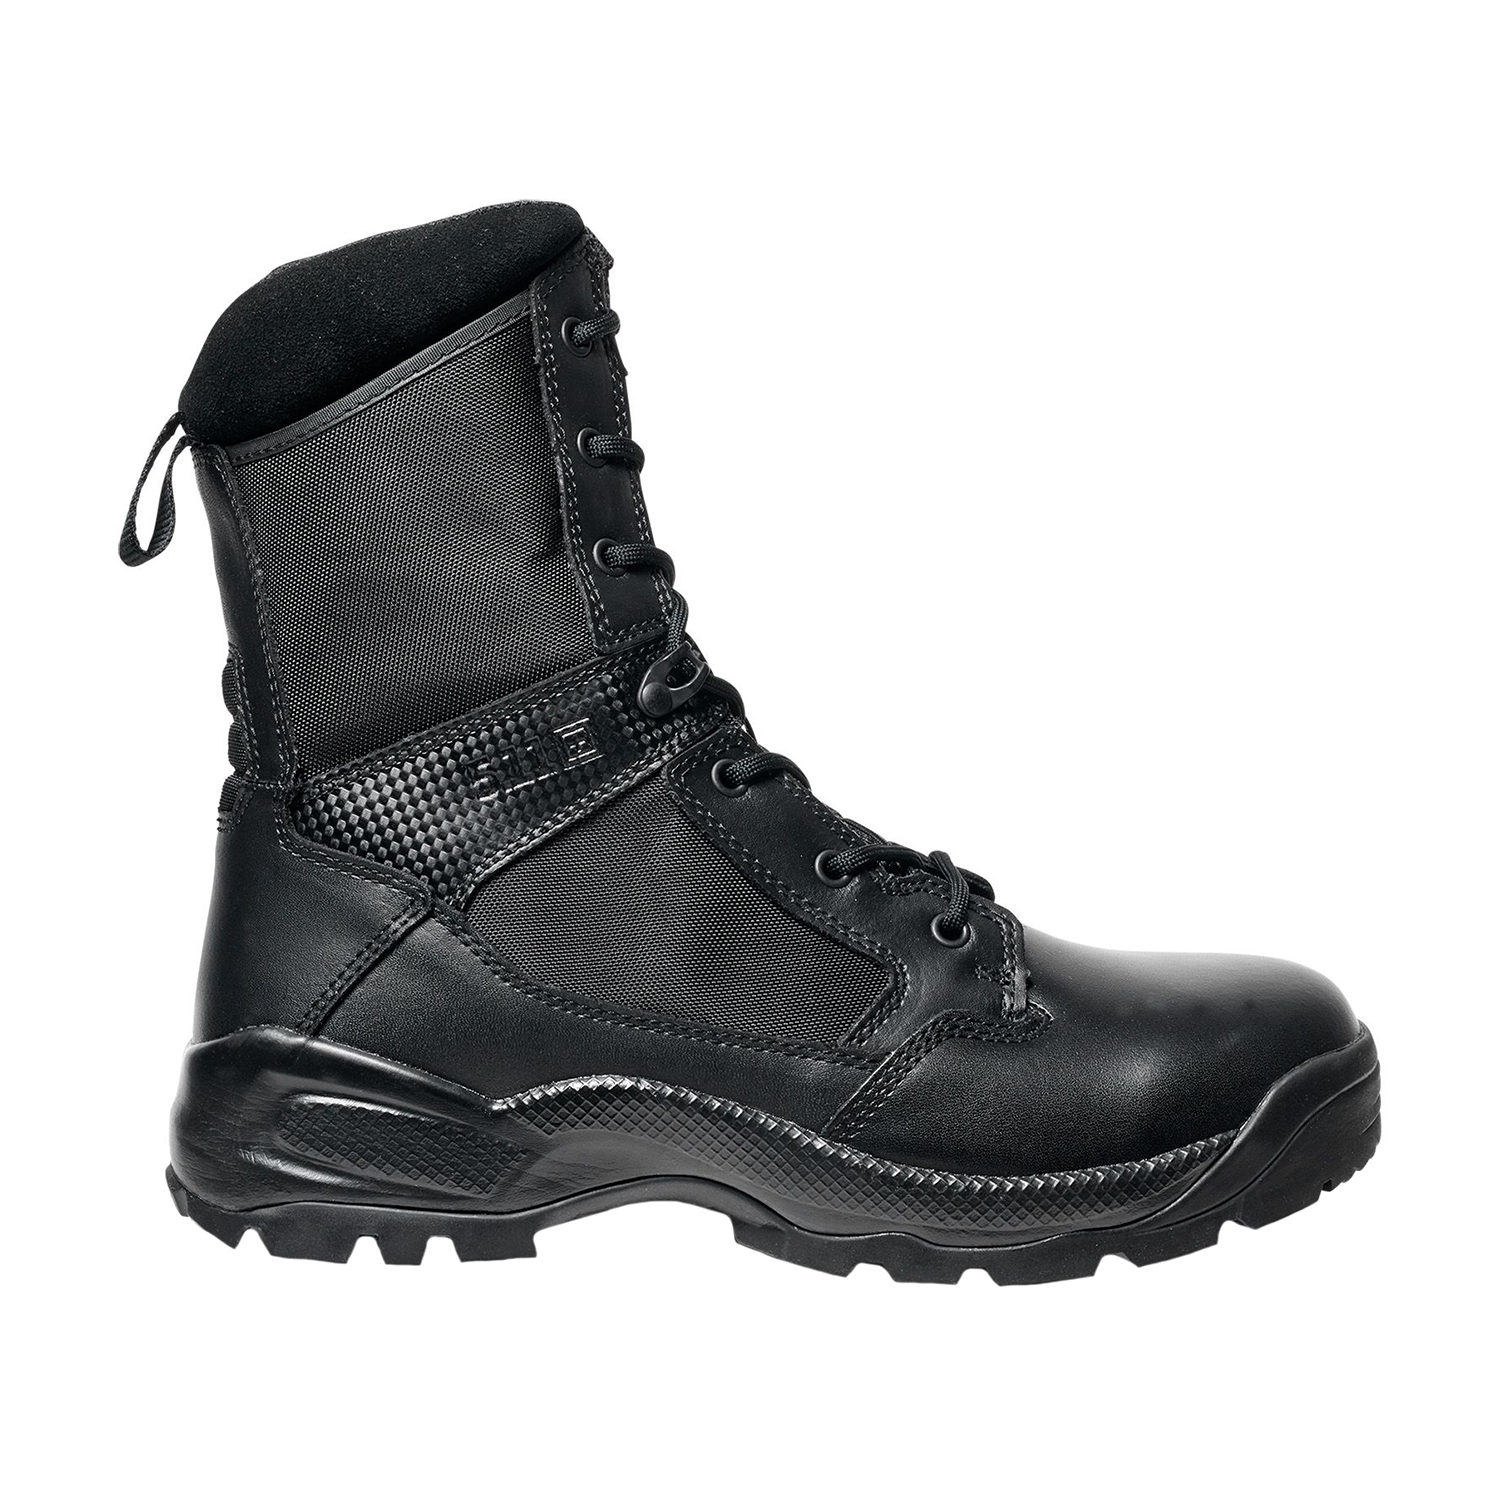 5.11 Tactical Range Master Boot 12148 | Tactical shoes